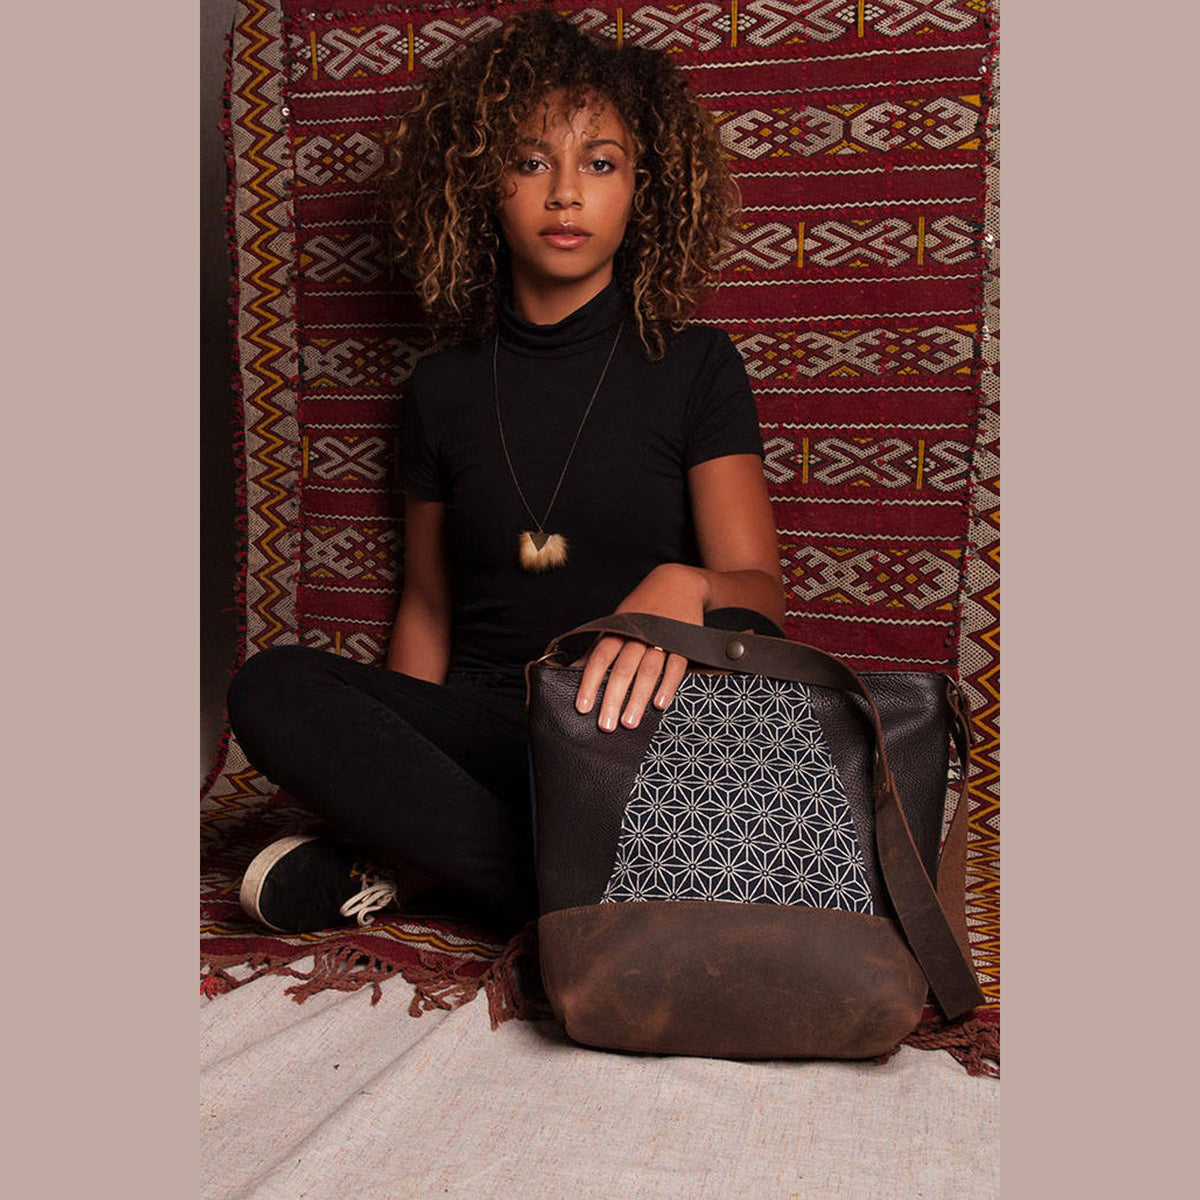 Model Wearing an Adjustable Leather Shoulder Bag with Japanese Fabric - Sold by Chic & Basta